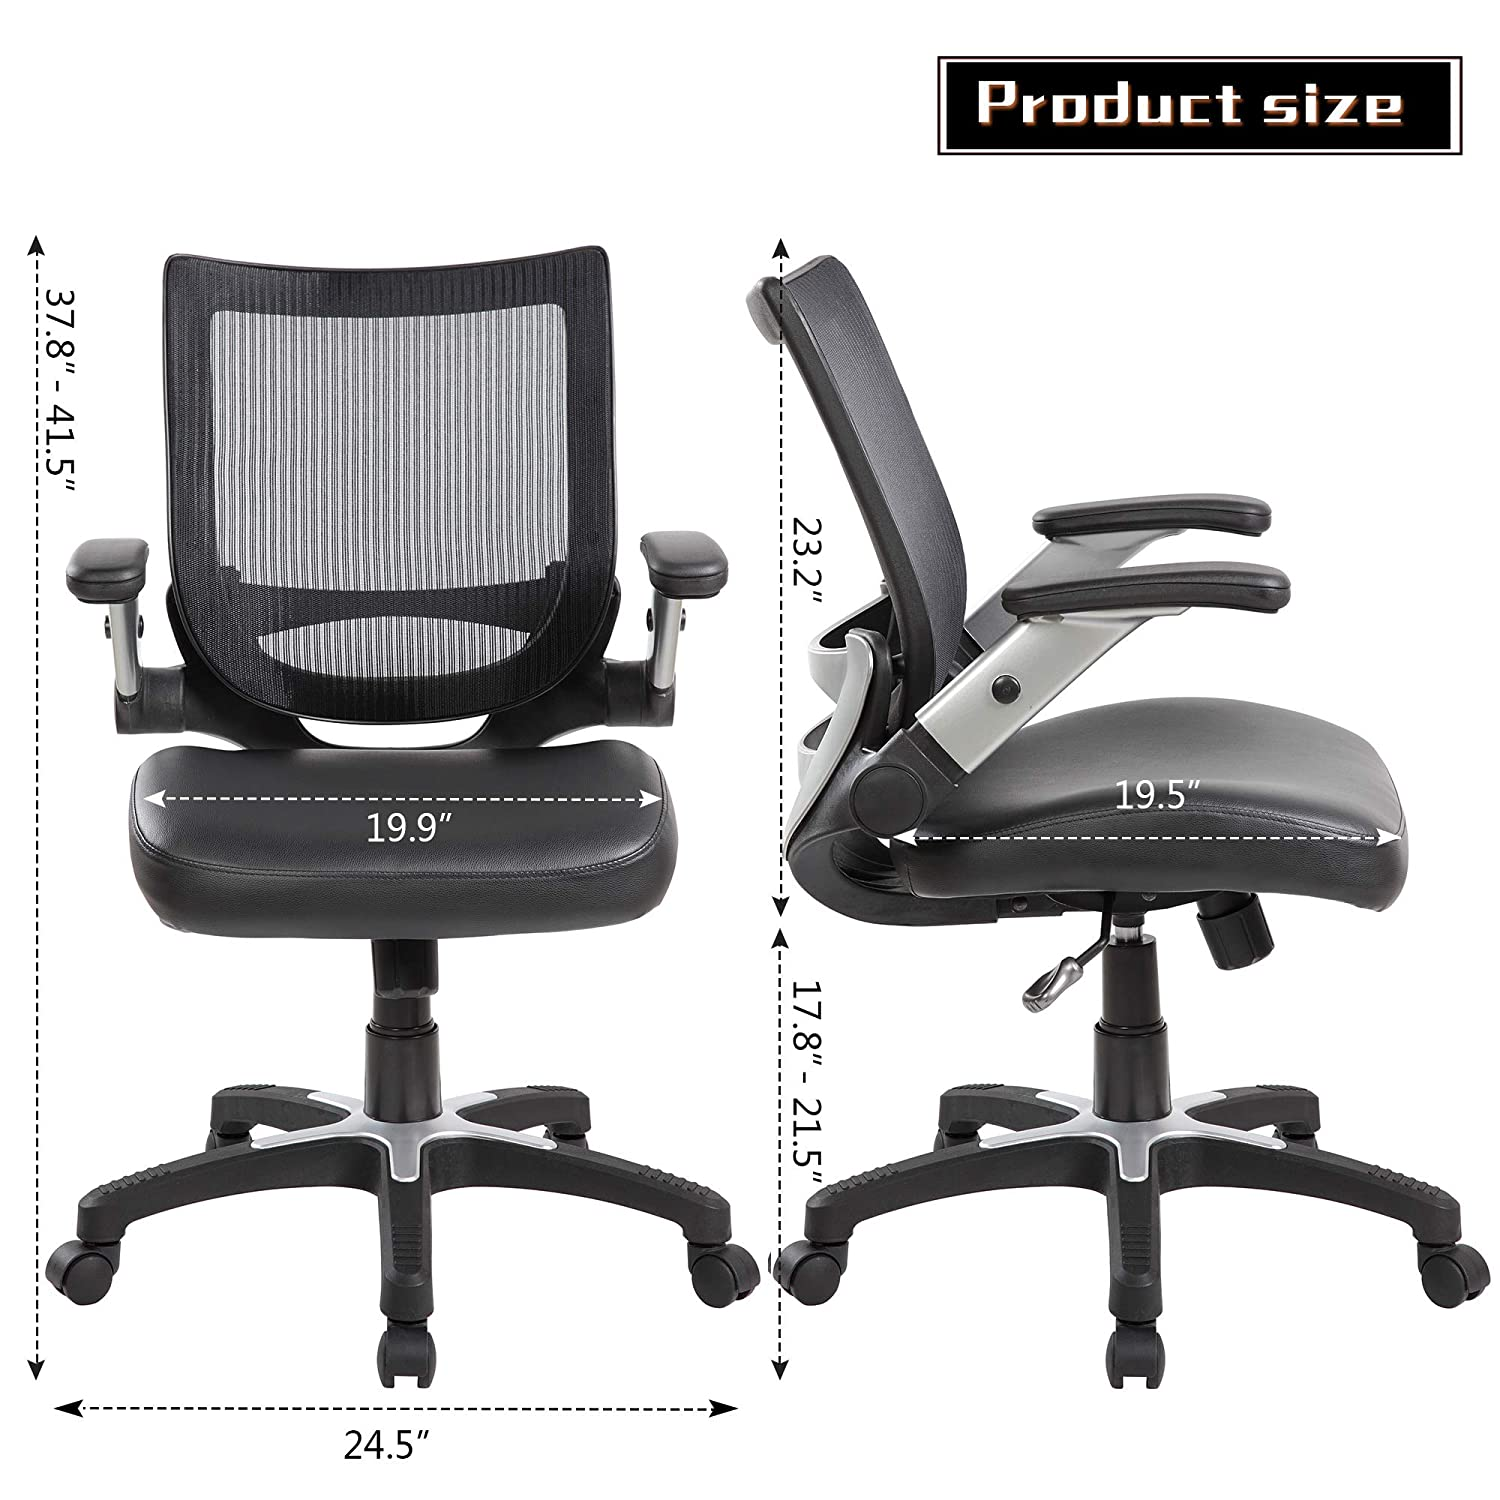 eurosports Ajustable Mesh Office Desk Chair Mid-Back Ergonomic Computer Chair with Flip-up Amrs,Black UNITED INDUSTRIES GROUP